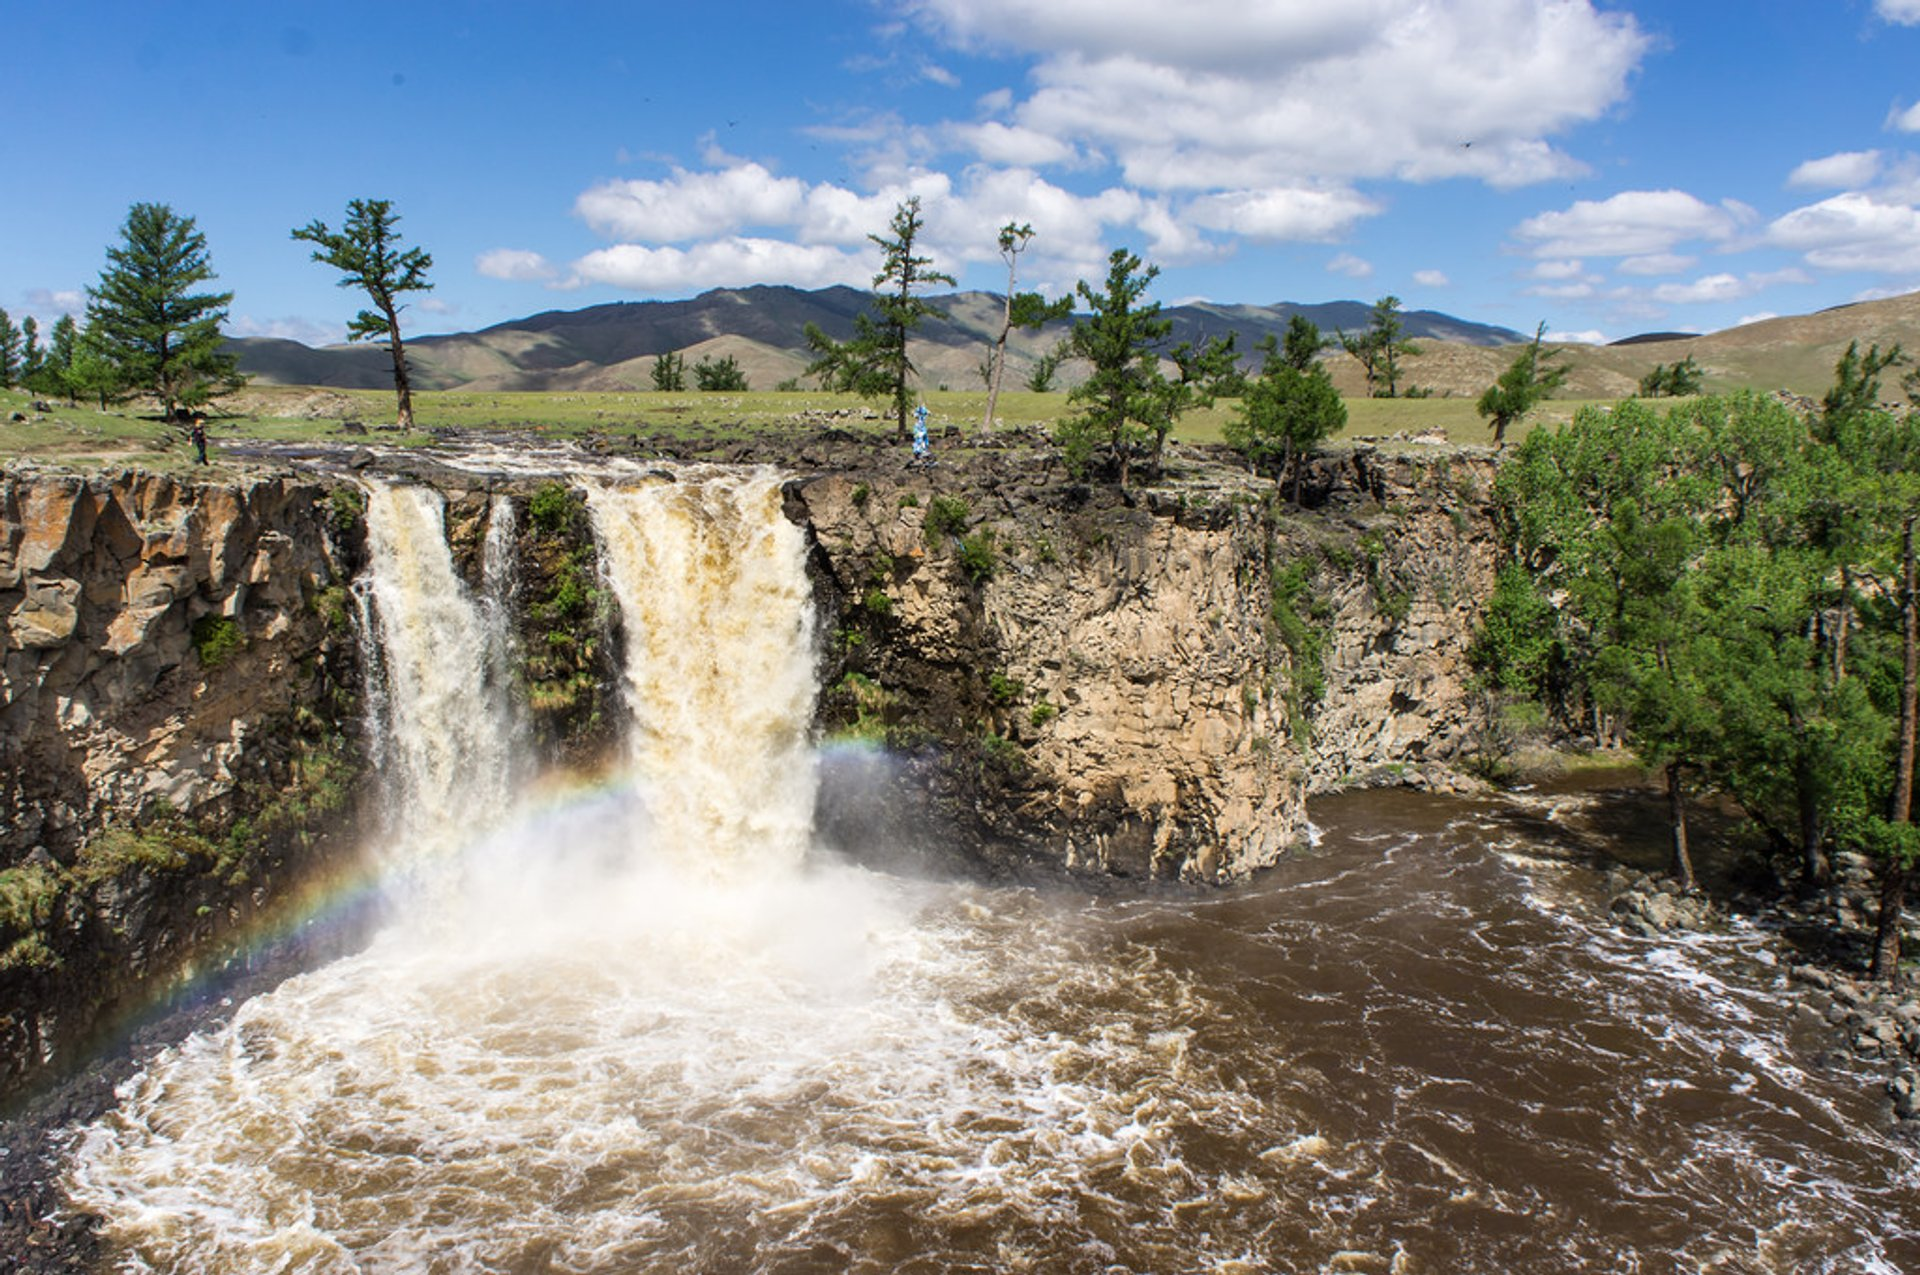 Orkhon Waterfalls in Mongolia 2020 - Best Time